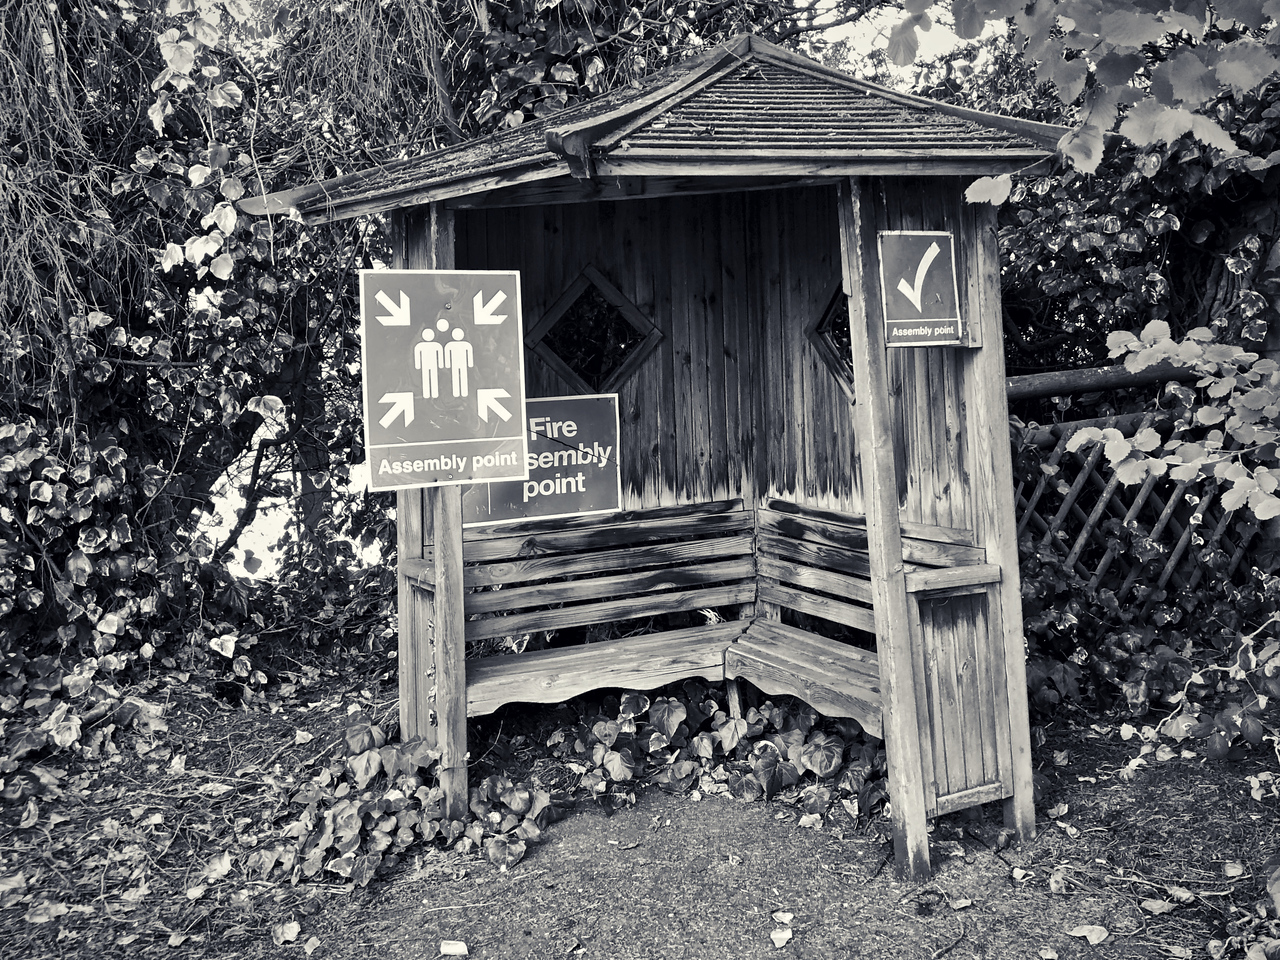 Rustic assembly point